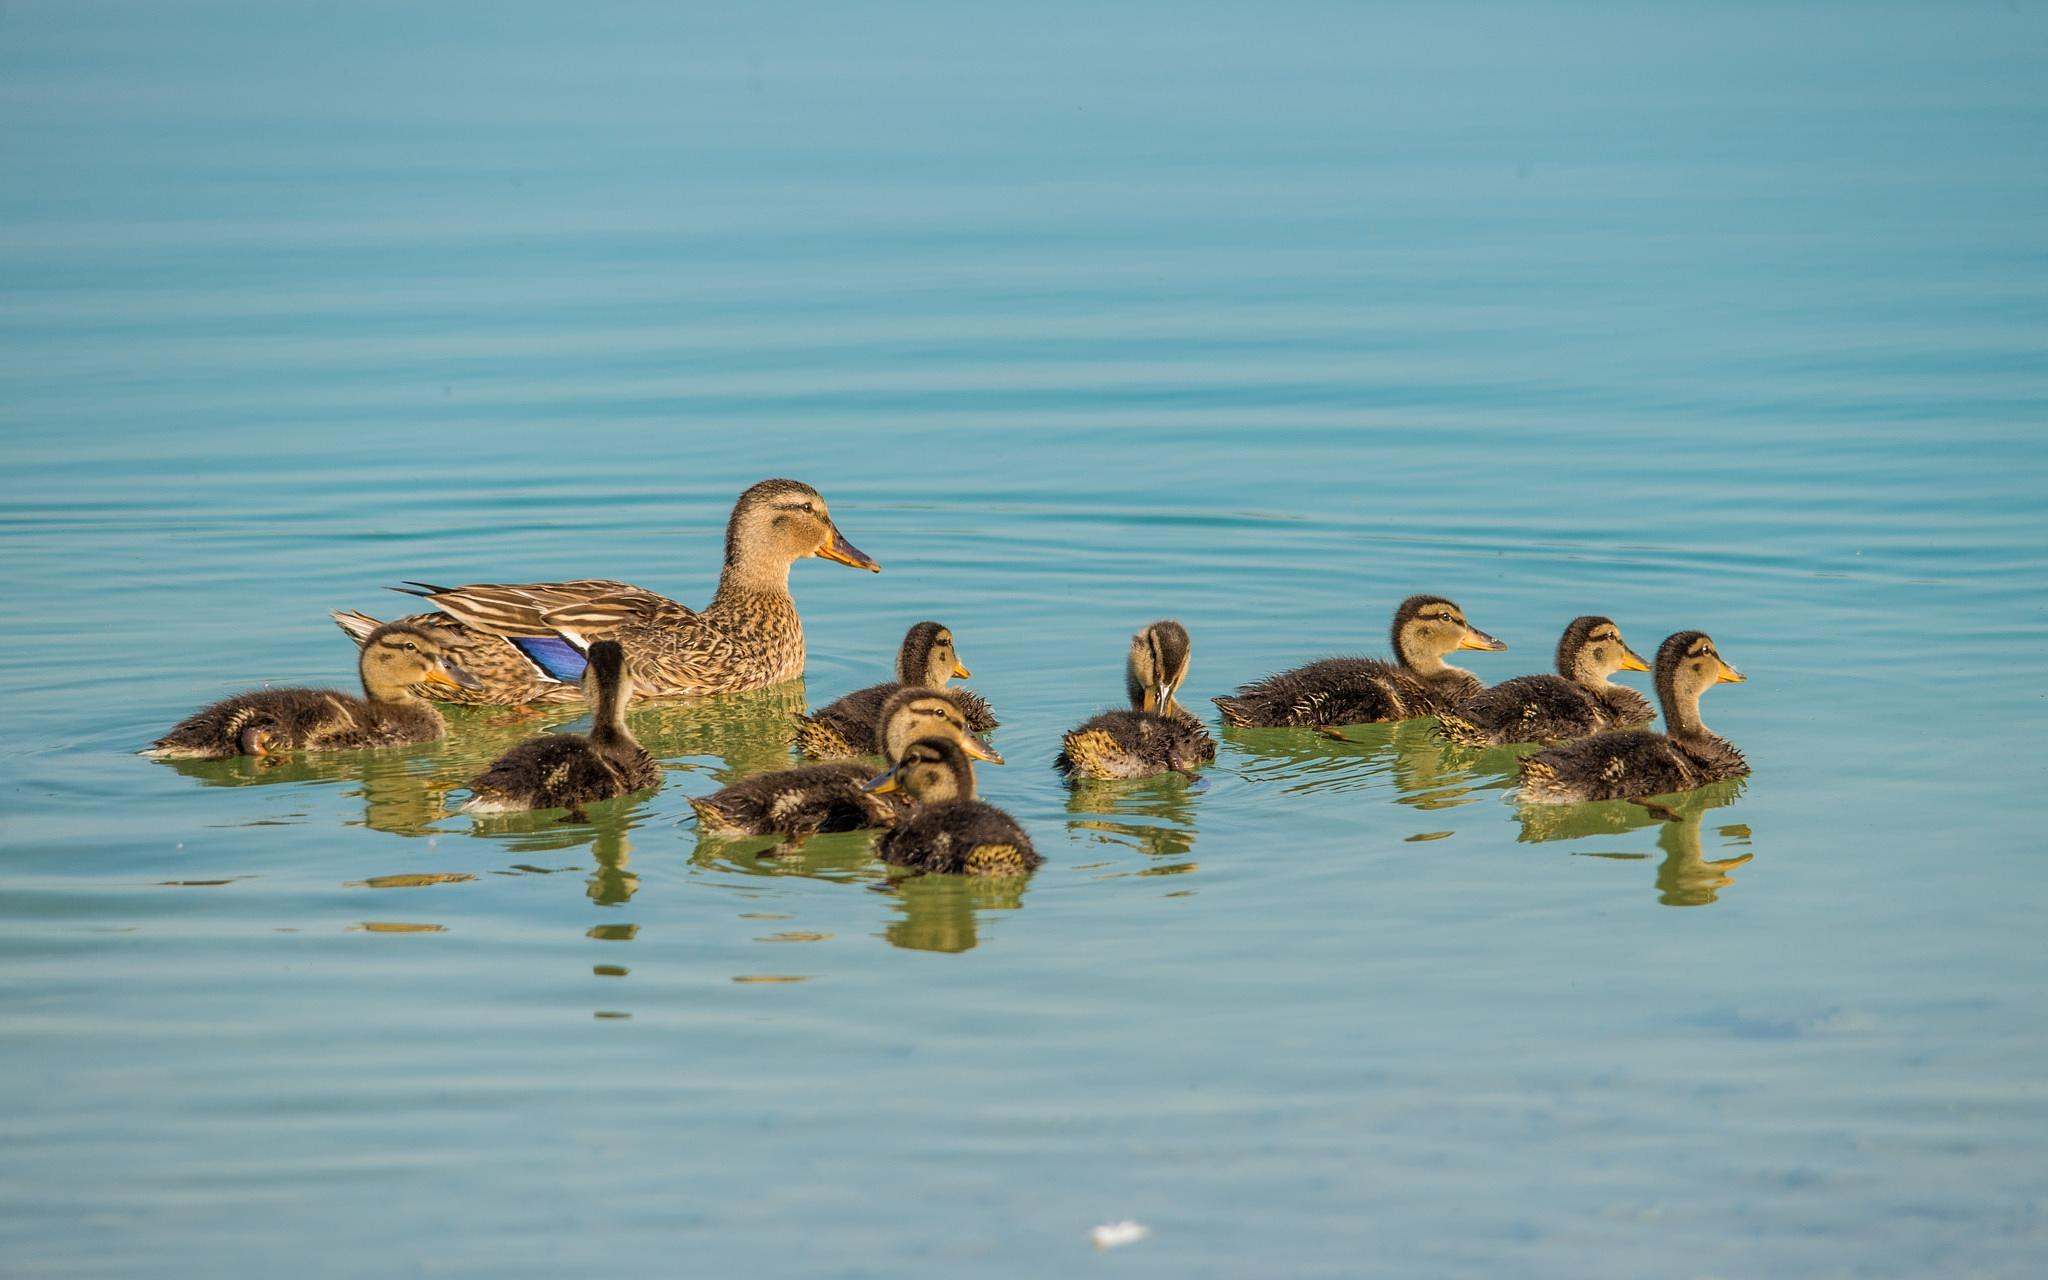 ducks family by Vlado Ferencic